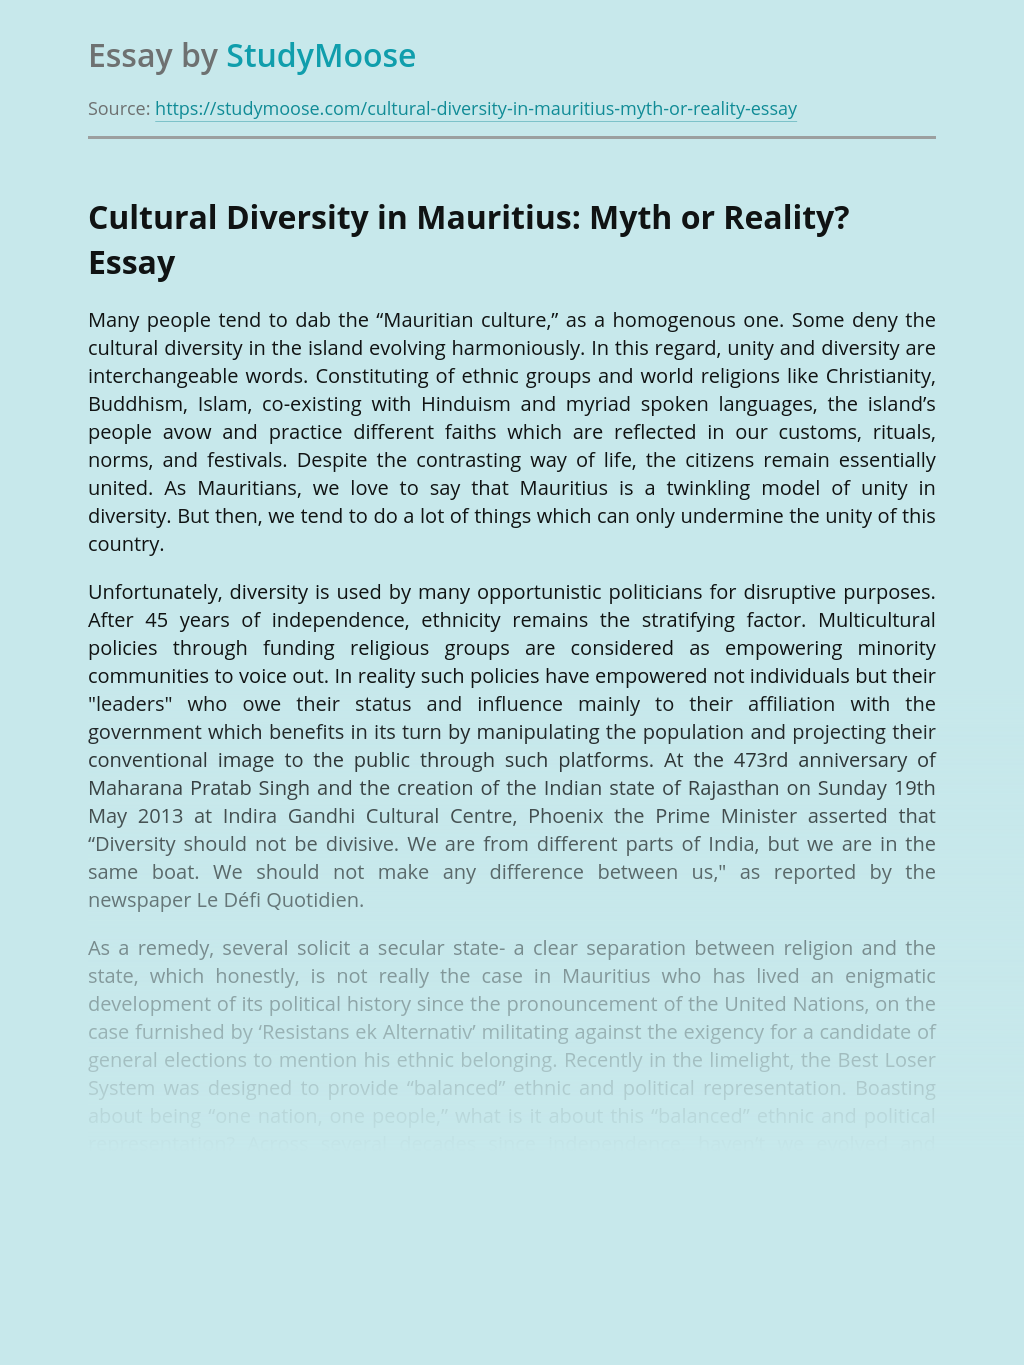 Cultural Diversity in Mauritius: Myth or Reality?